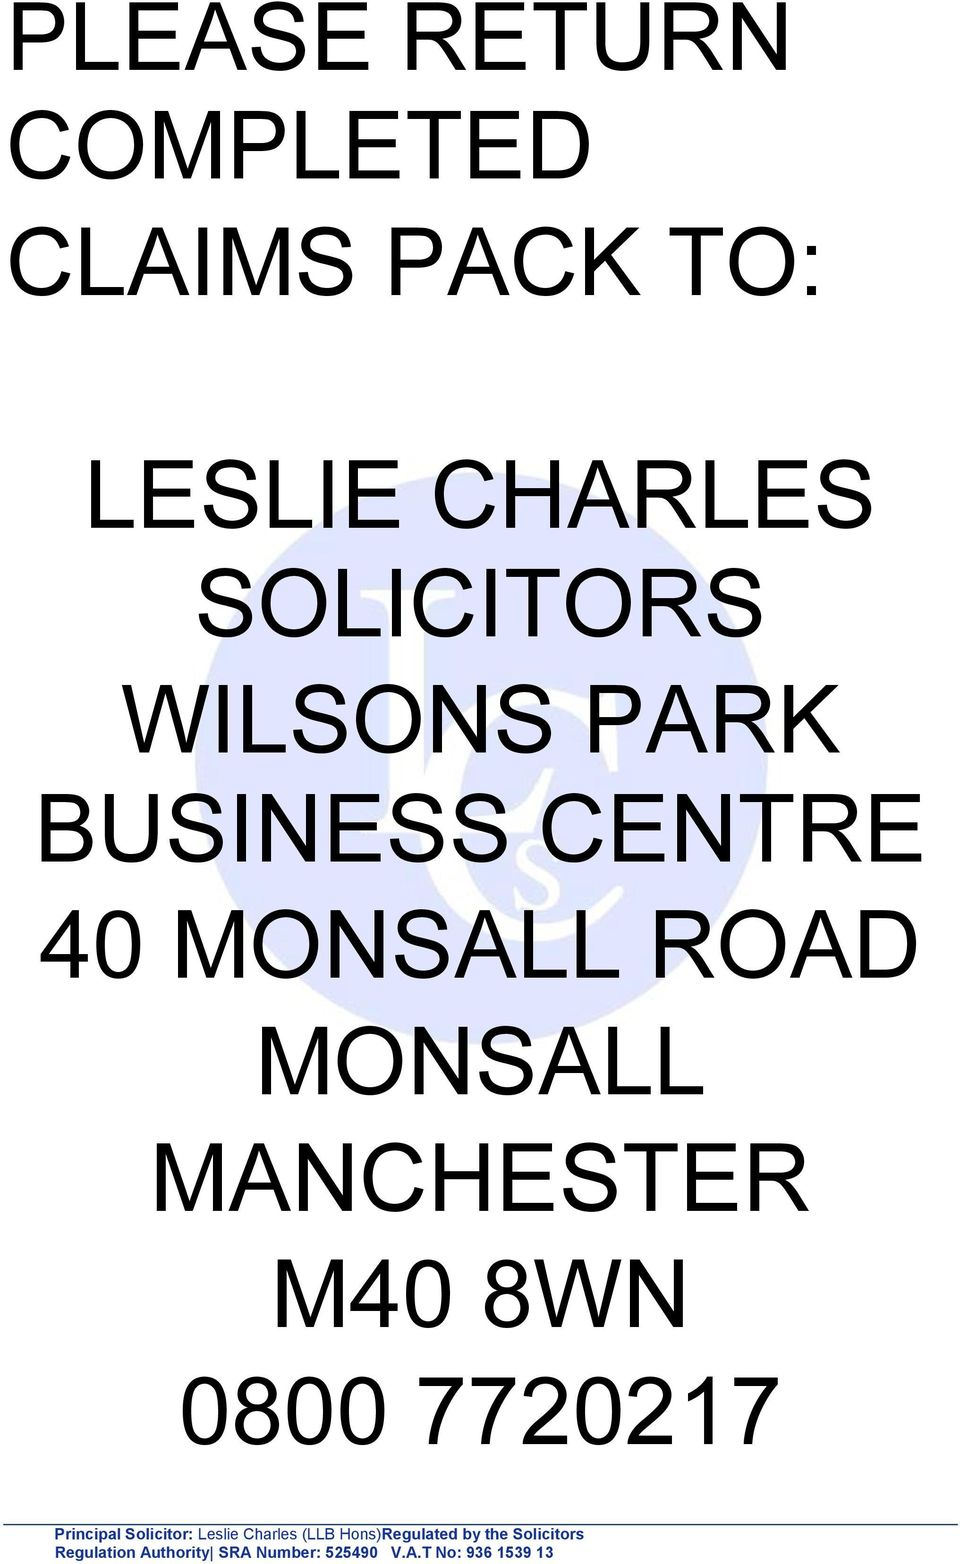 0800 7720217 Principal Solicitor: Leslie Charles (LLB Hons)Regulated by